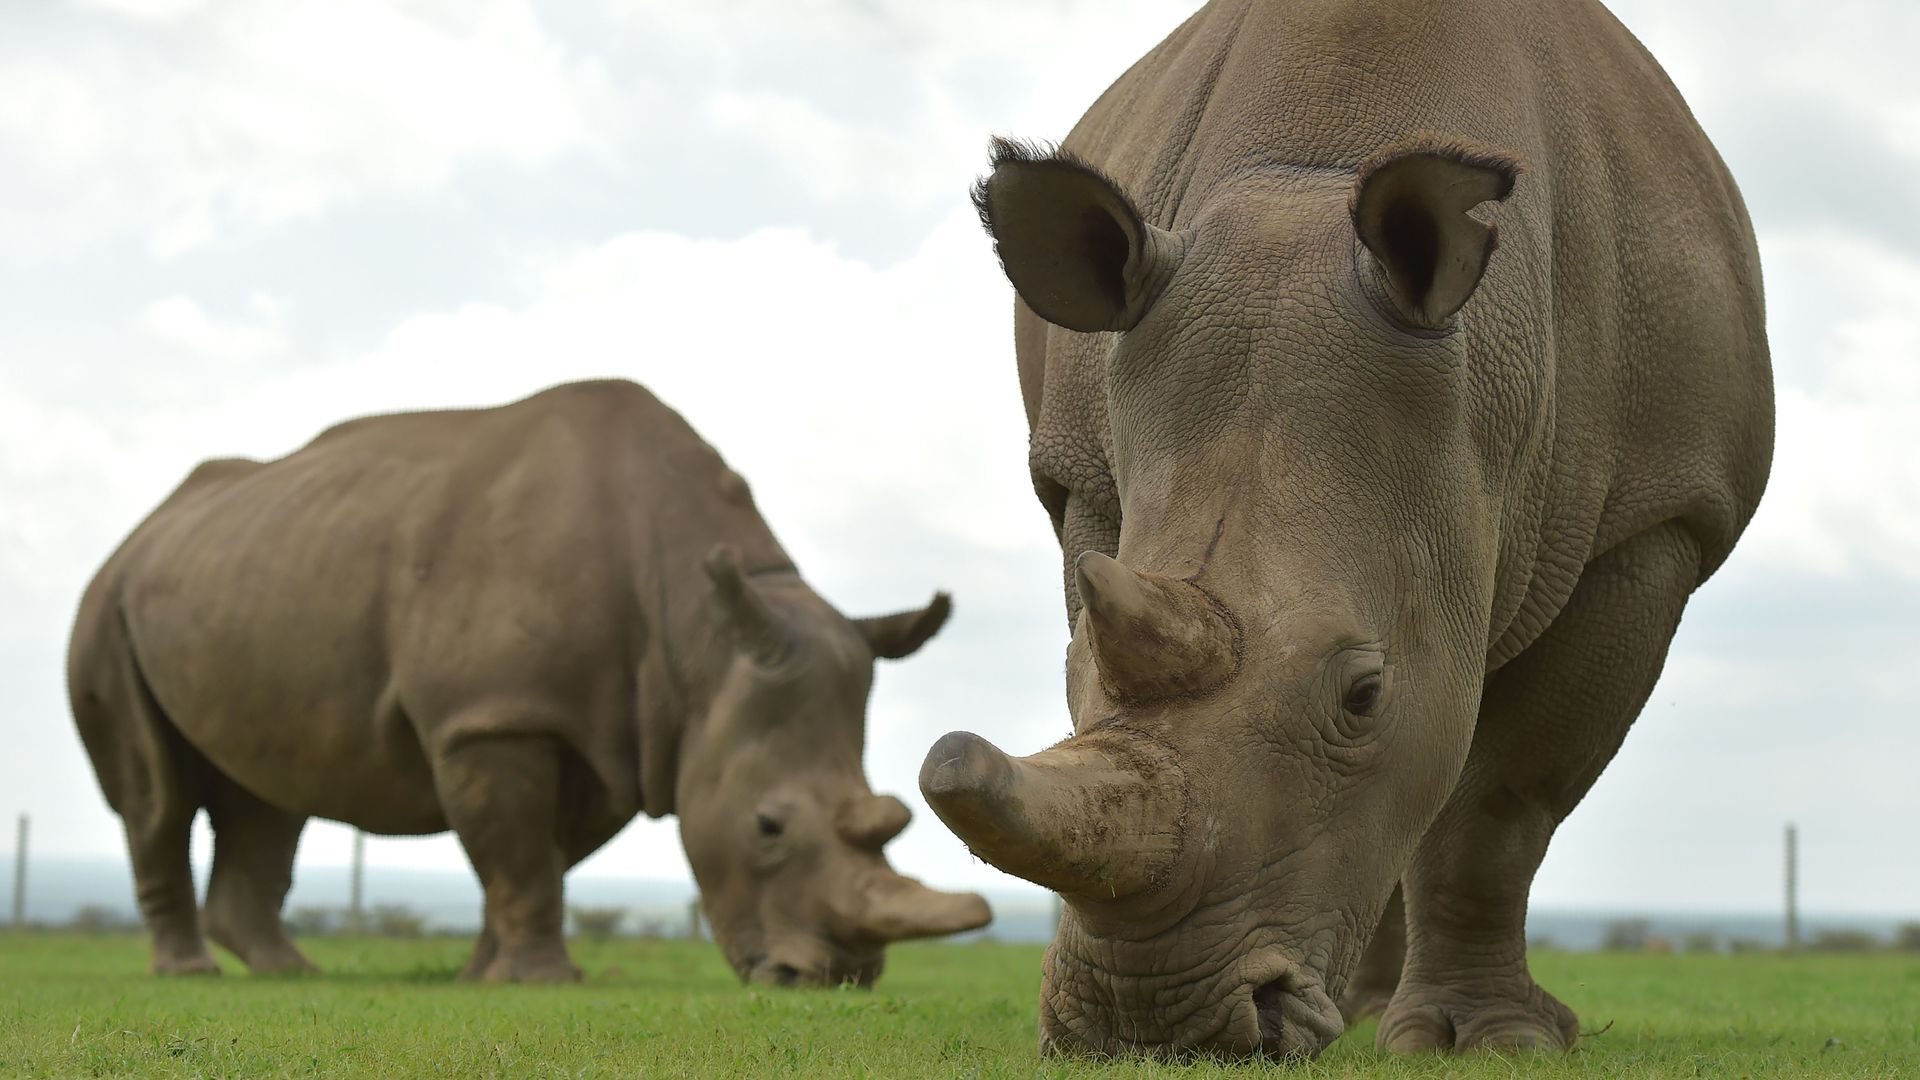 High-tech reproduction methods could save endangered rhino